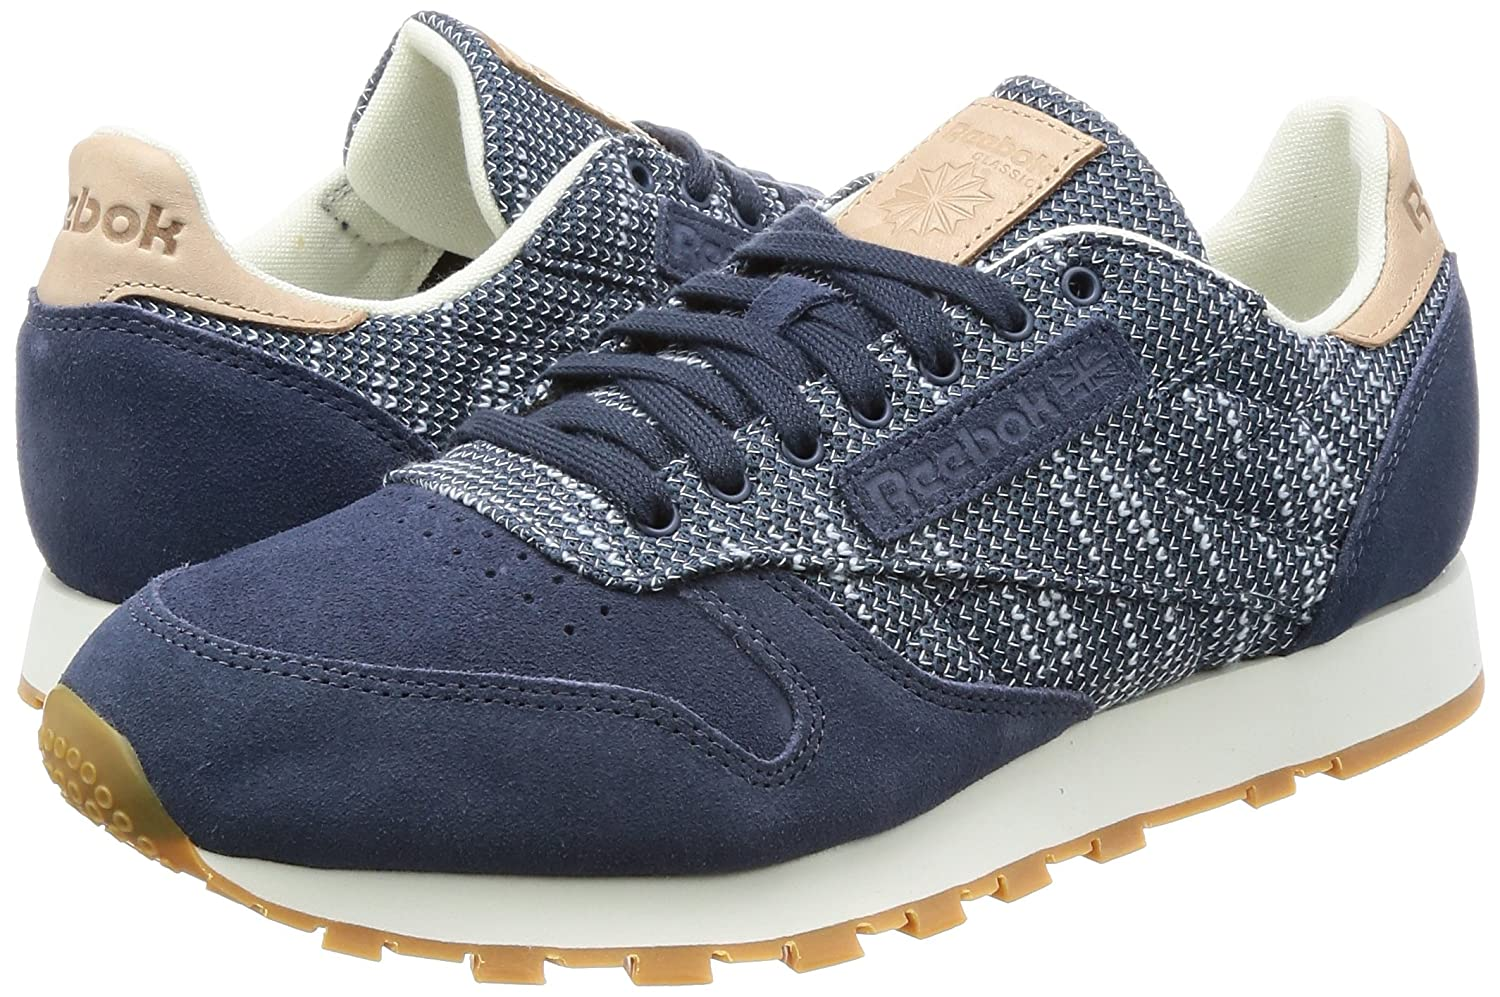 outlet store e169a 4992d Reebok Men s Cl Leather Ebk Fitness Shoes Beige Blue (Smoky Indigo Cloud  Grey Chalk Gum) 6 UK  Buy Online at Low Prices in India - Amazon.in